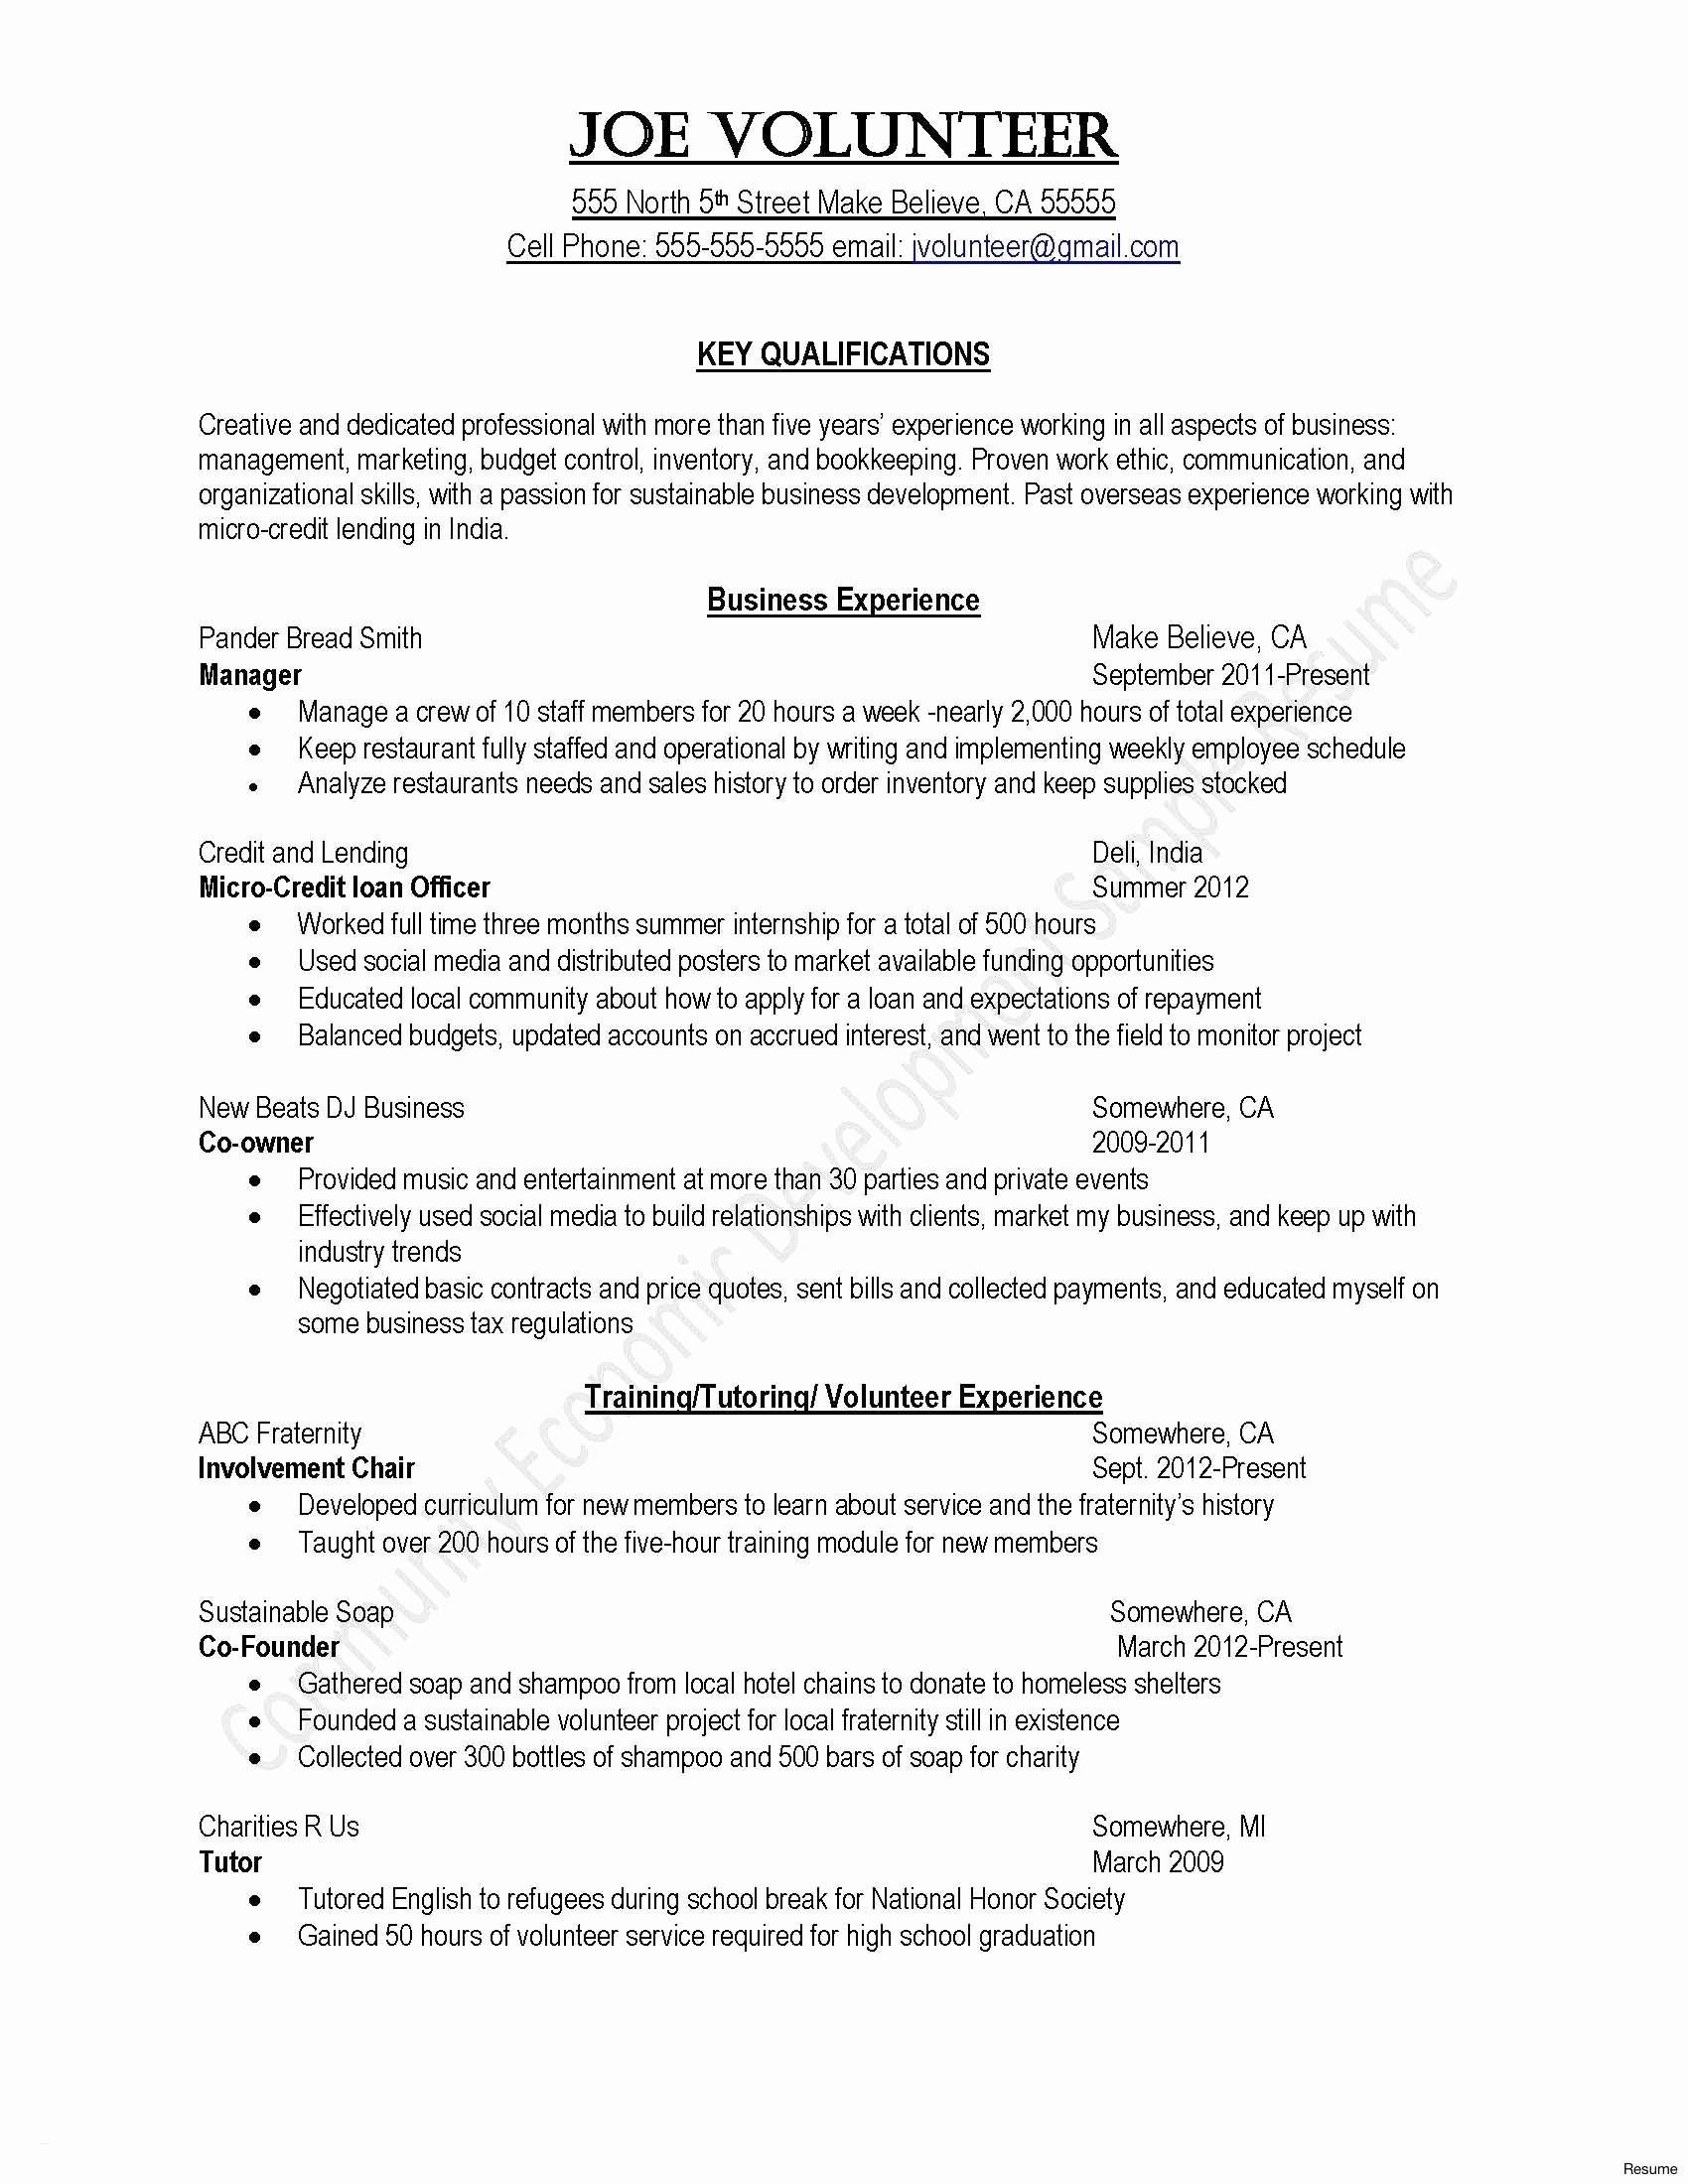 Creative Cover Letter Template Free Download - Cover Letter Sample for Restaurant Job Valid Accounting Resume